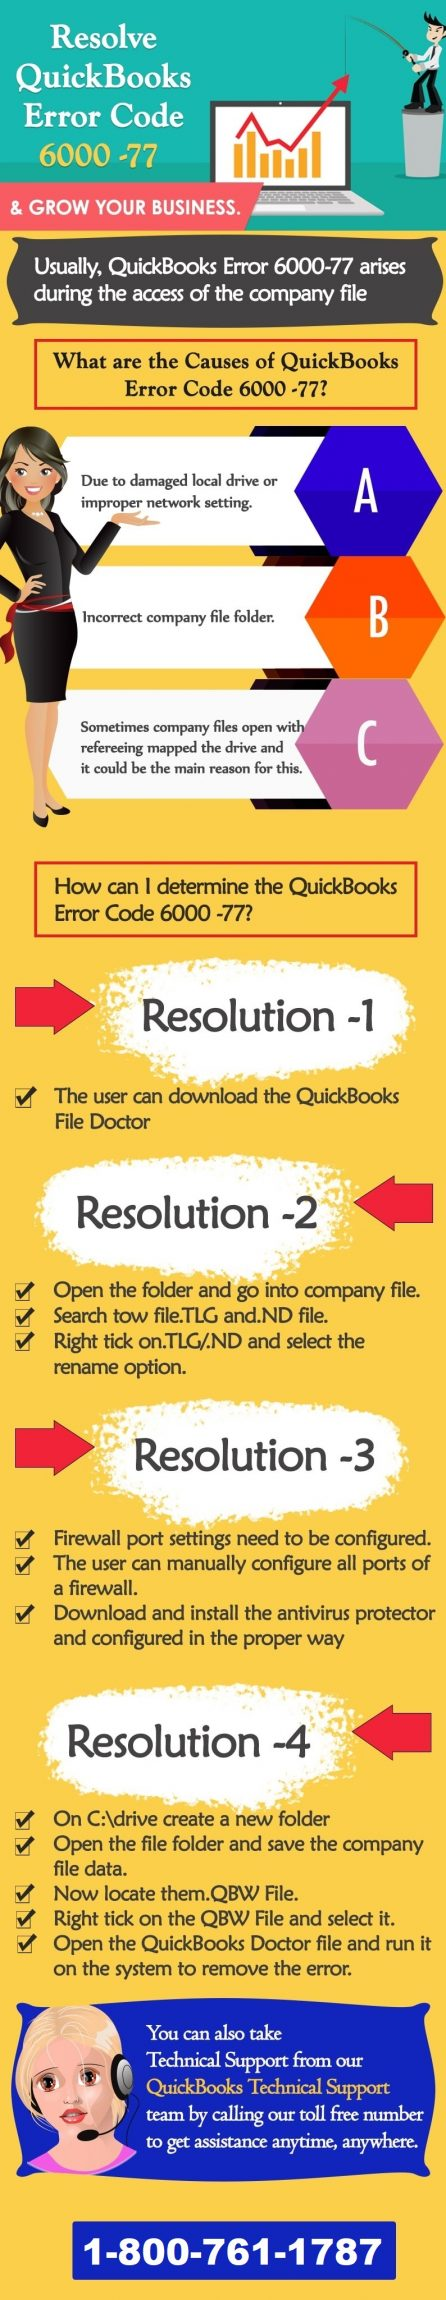 Infographical Steps to troubleshoot QuickBooks Error 6000, 77 - Info-graphic Image